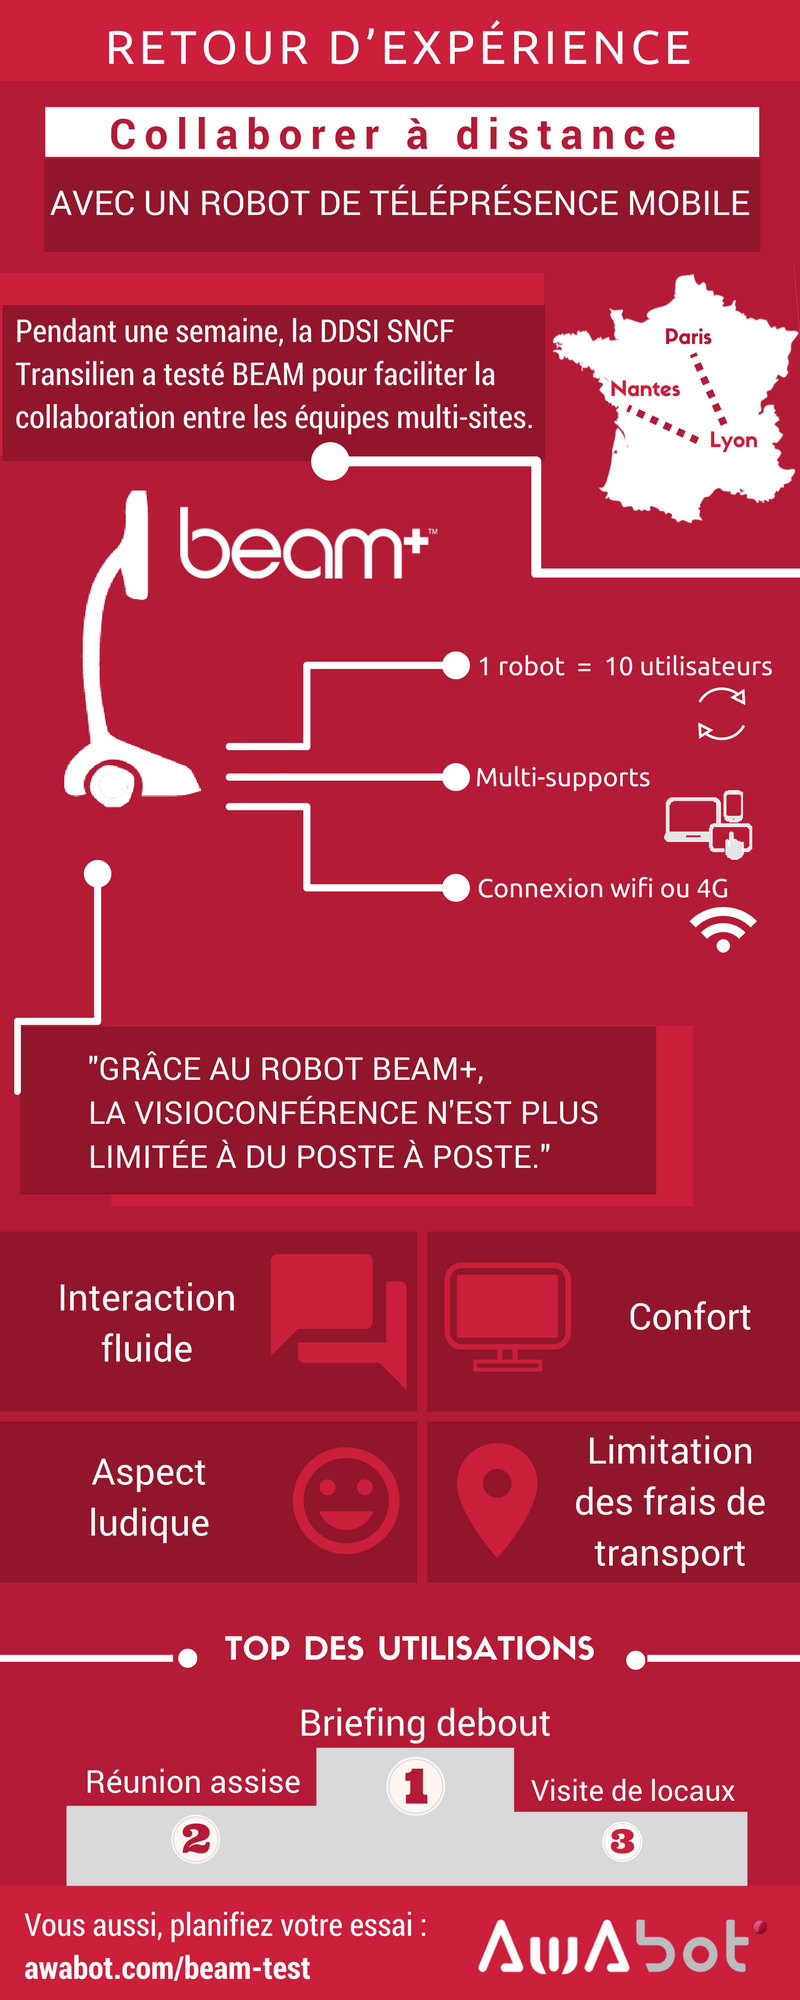 collaboration à distance équipe multi-sites-SNCF